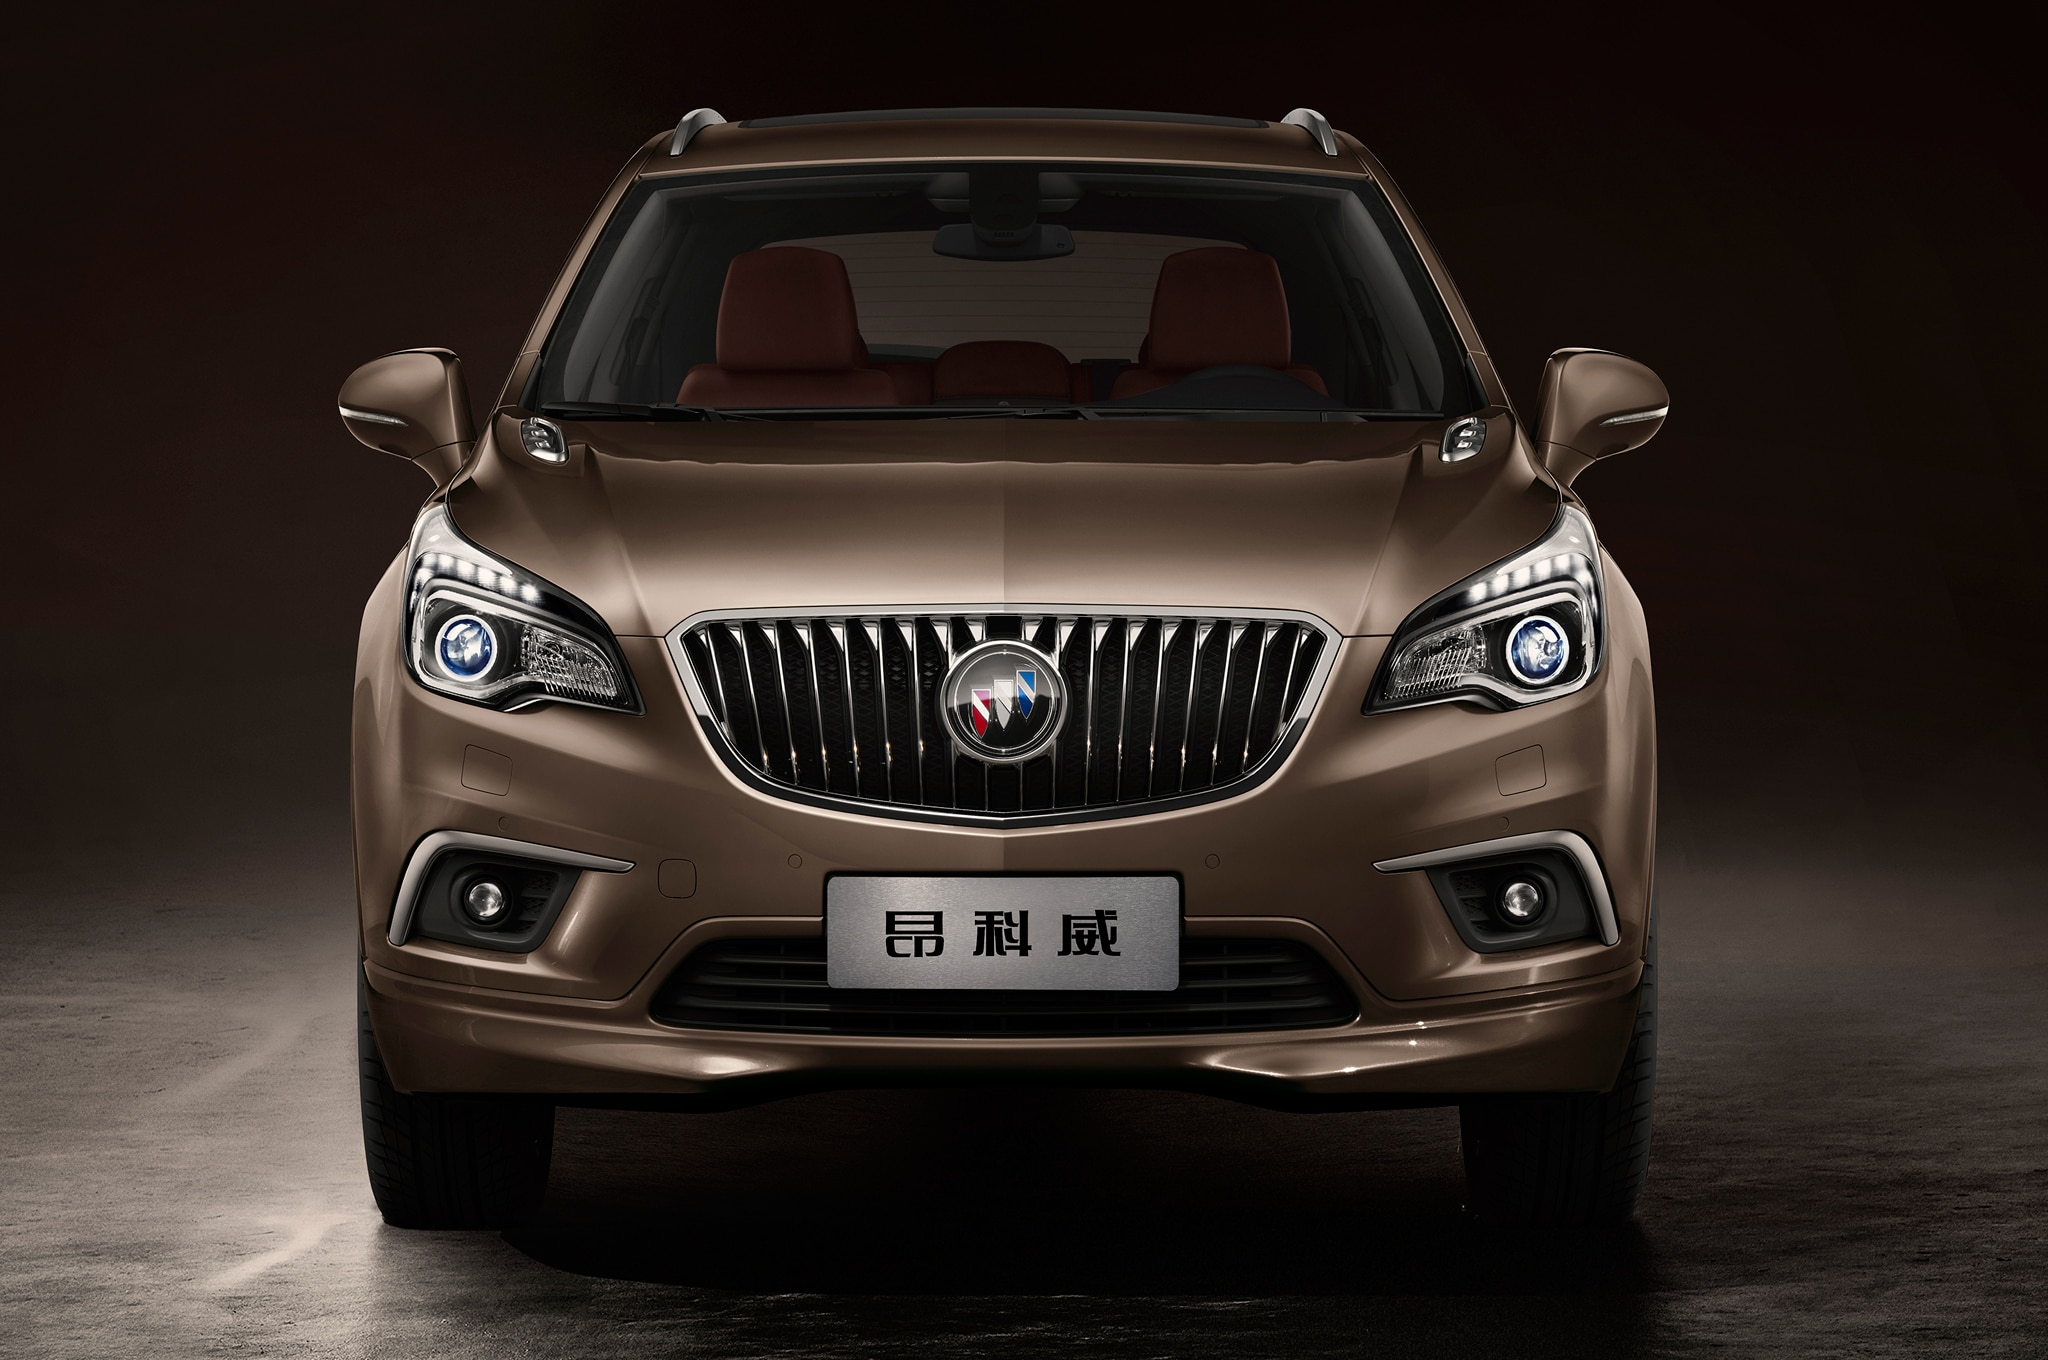 Report: Buick to Import Chinese-Built Cars to the U.S.